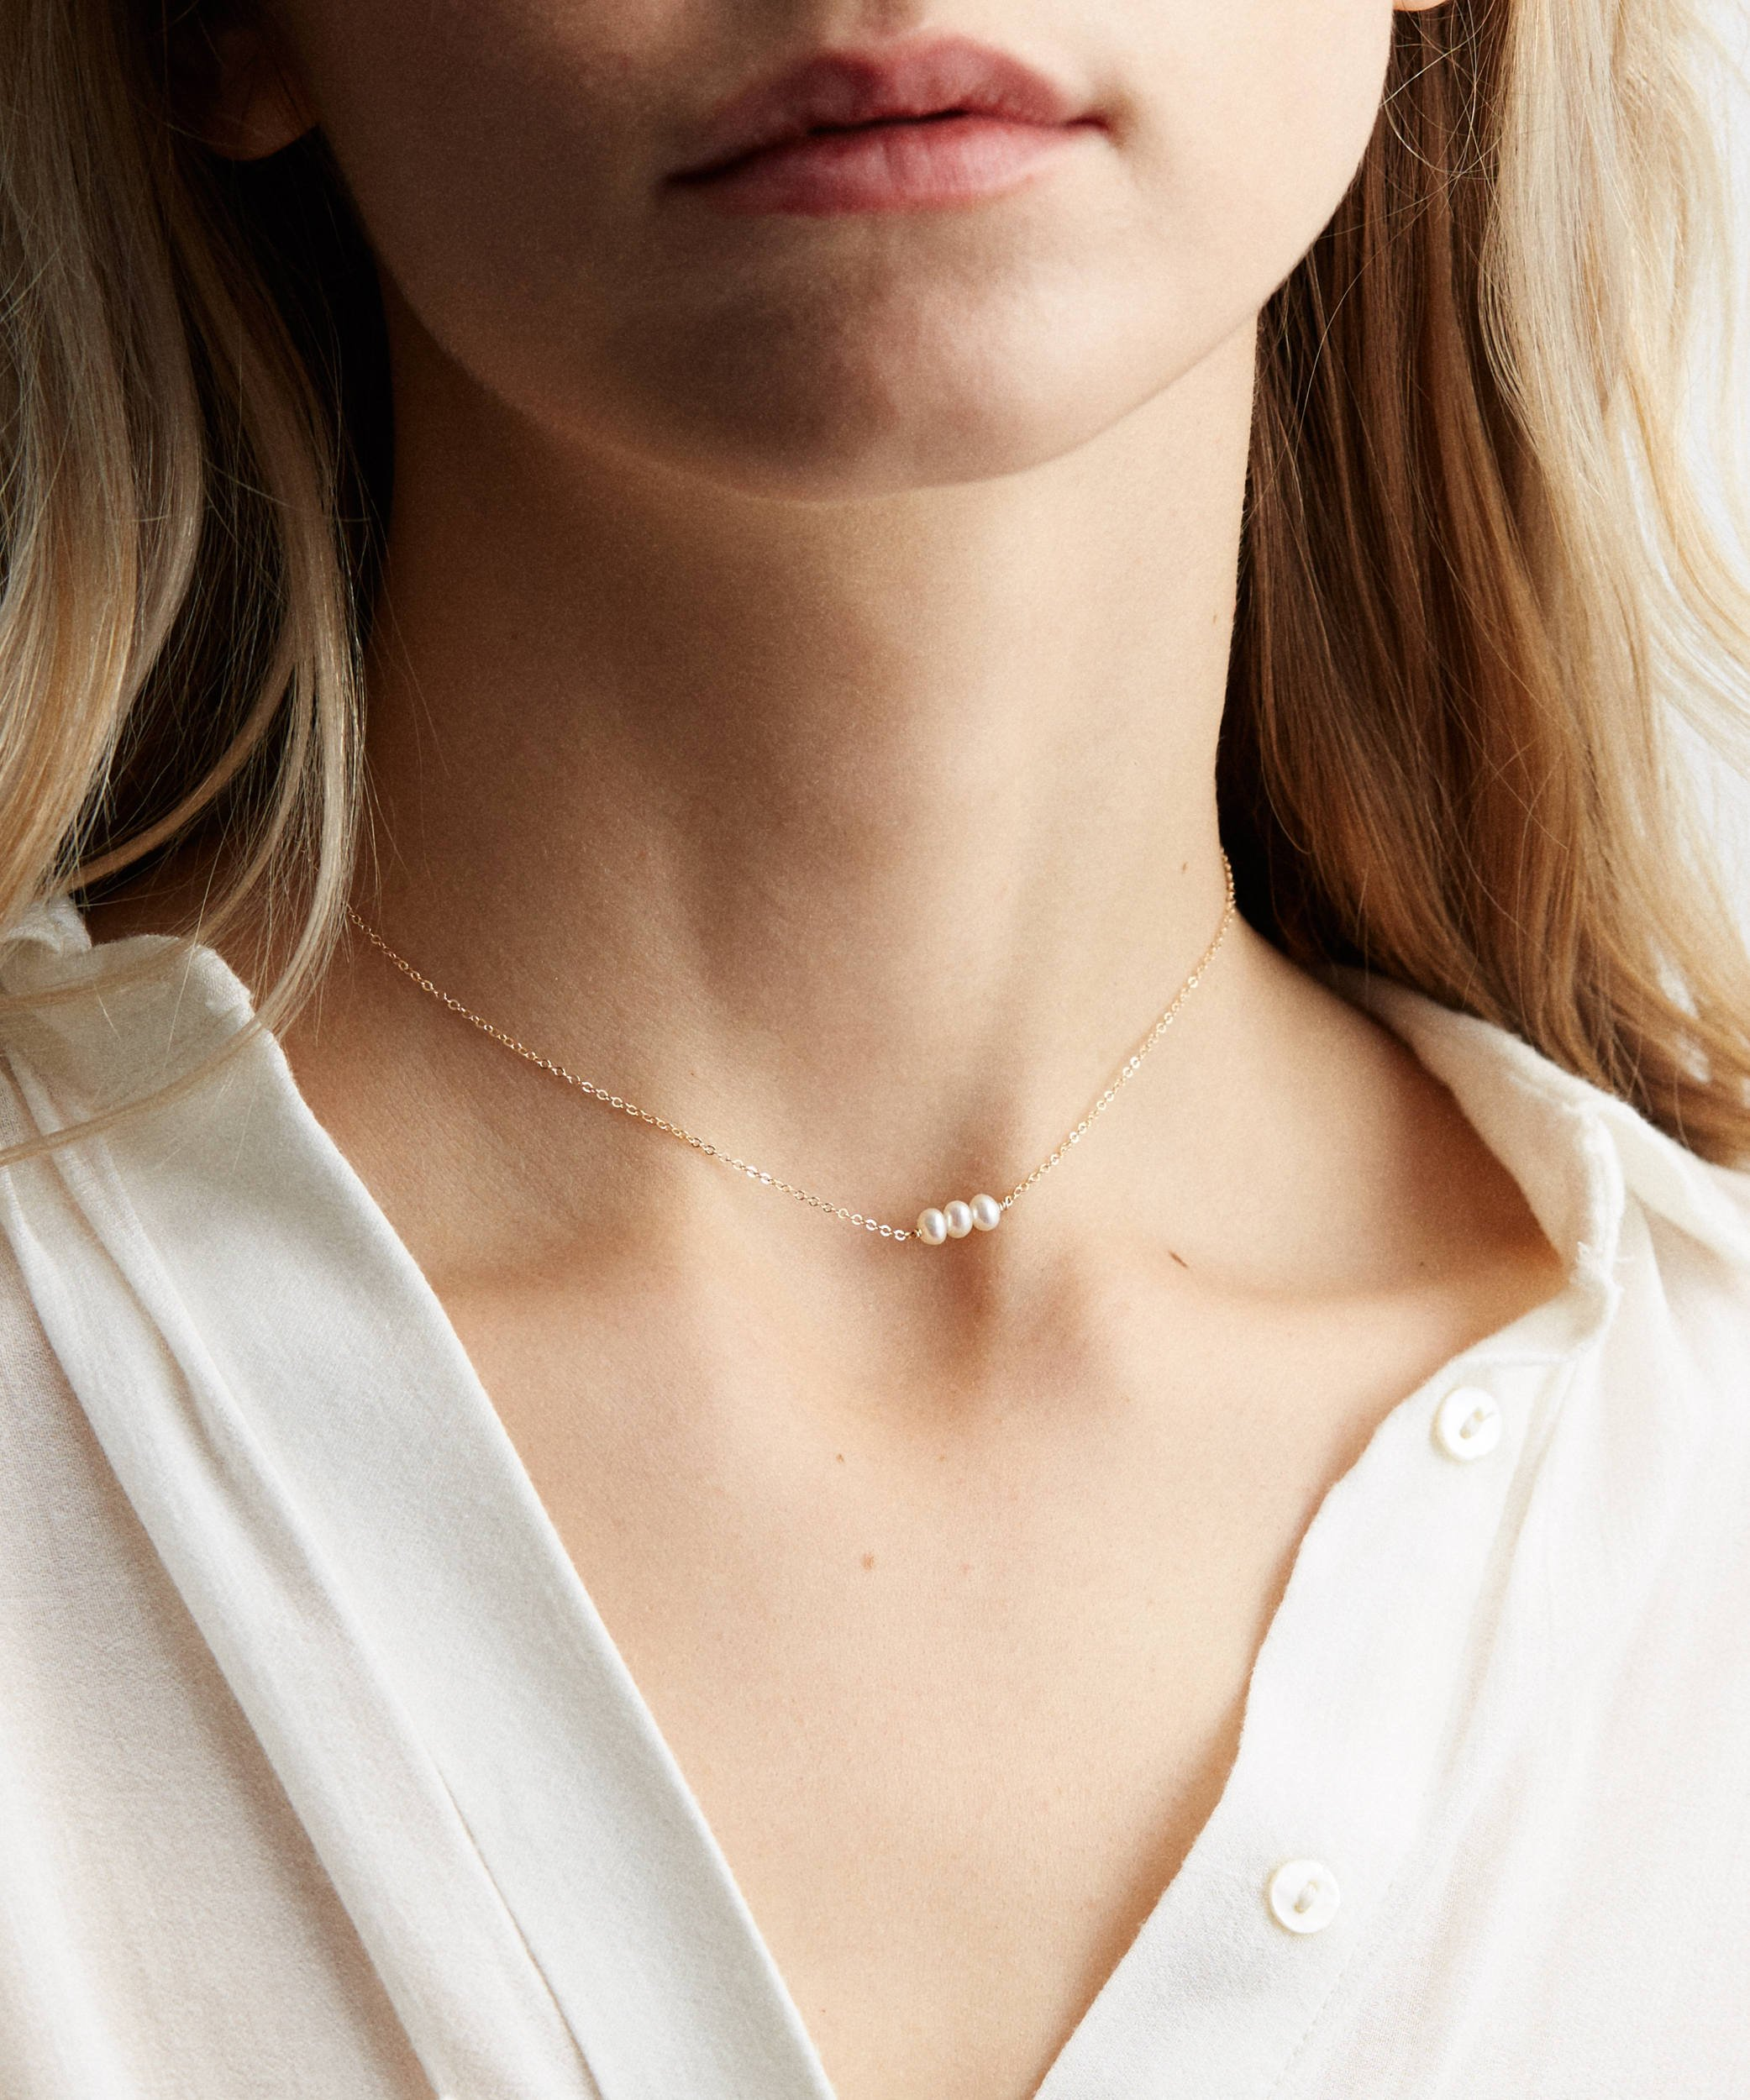 8a6bdf196 Befettly Womens One Layers Gold Choker Necklace Imitation Pearls Pendant  Handmade 14K Gold Fill Boho Chain-CK2-3Pearls - Necklace-CK2-3Pearls <  Pendants ...